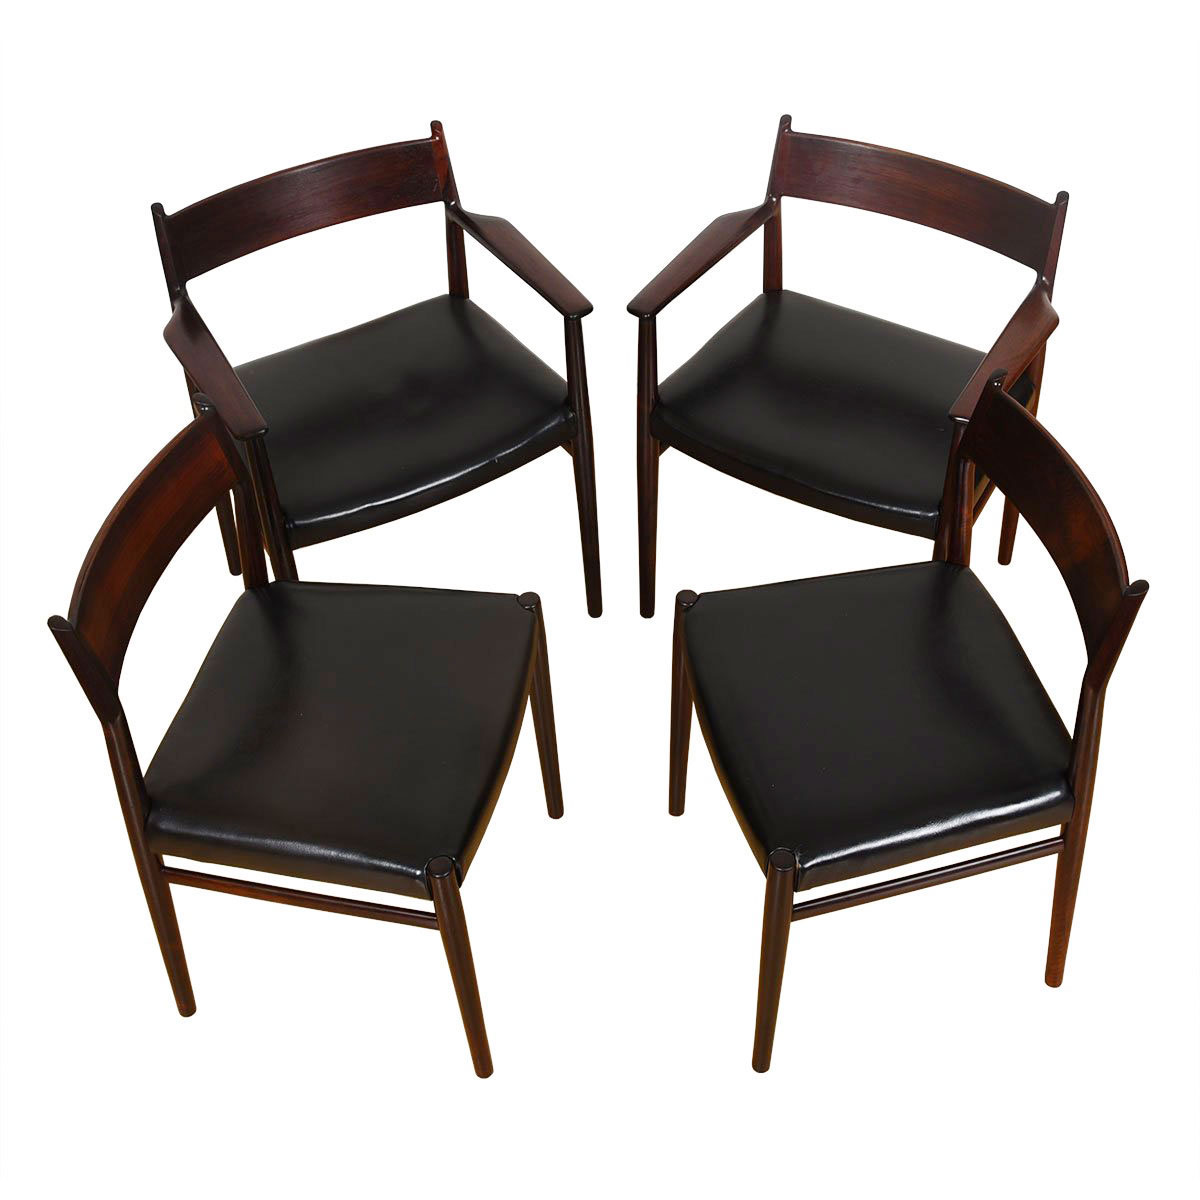 Set of 4 Danish Rosewood Dining Chairs (2 Arm + 2 Side)